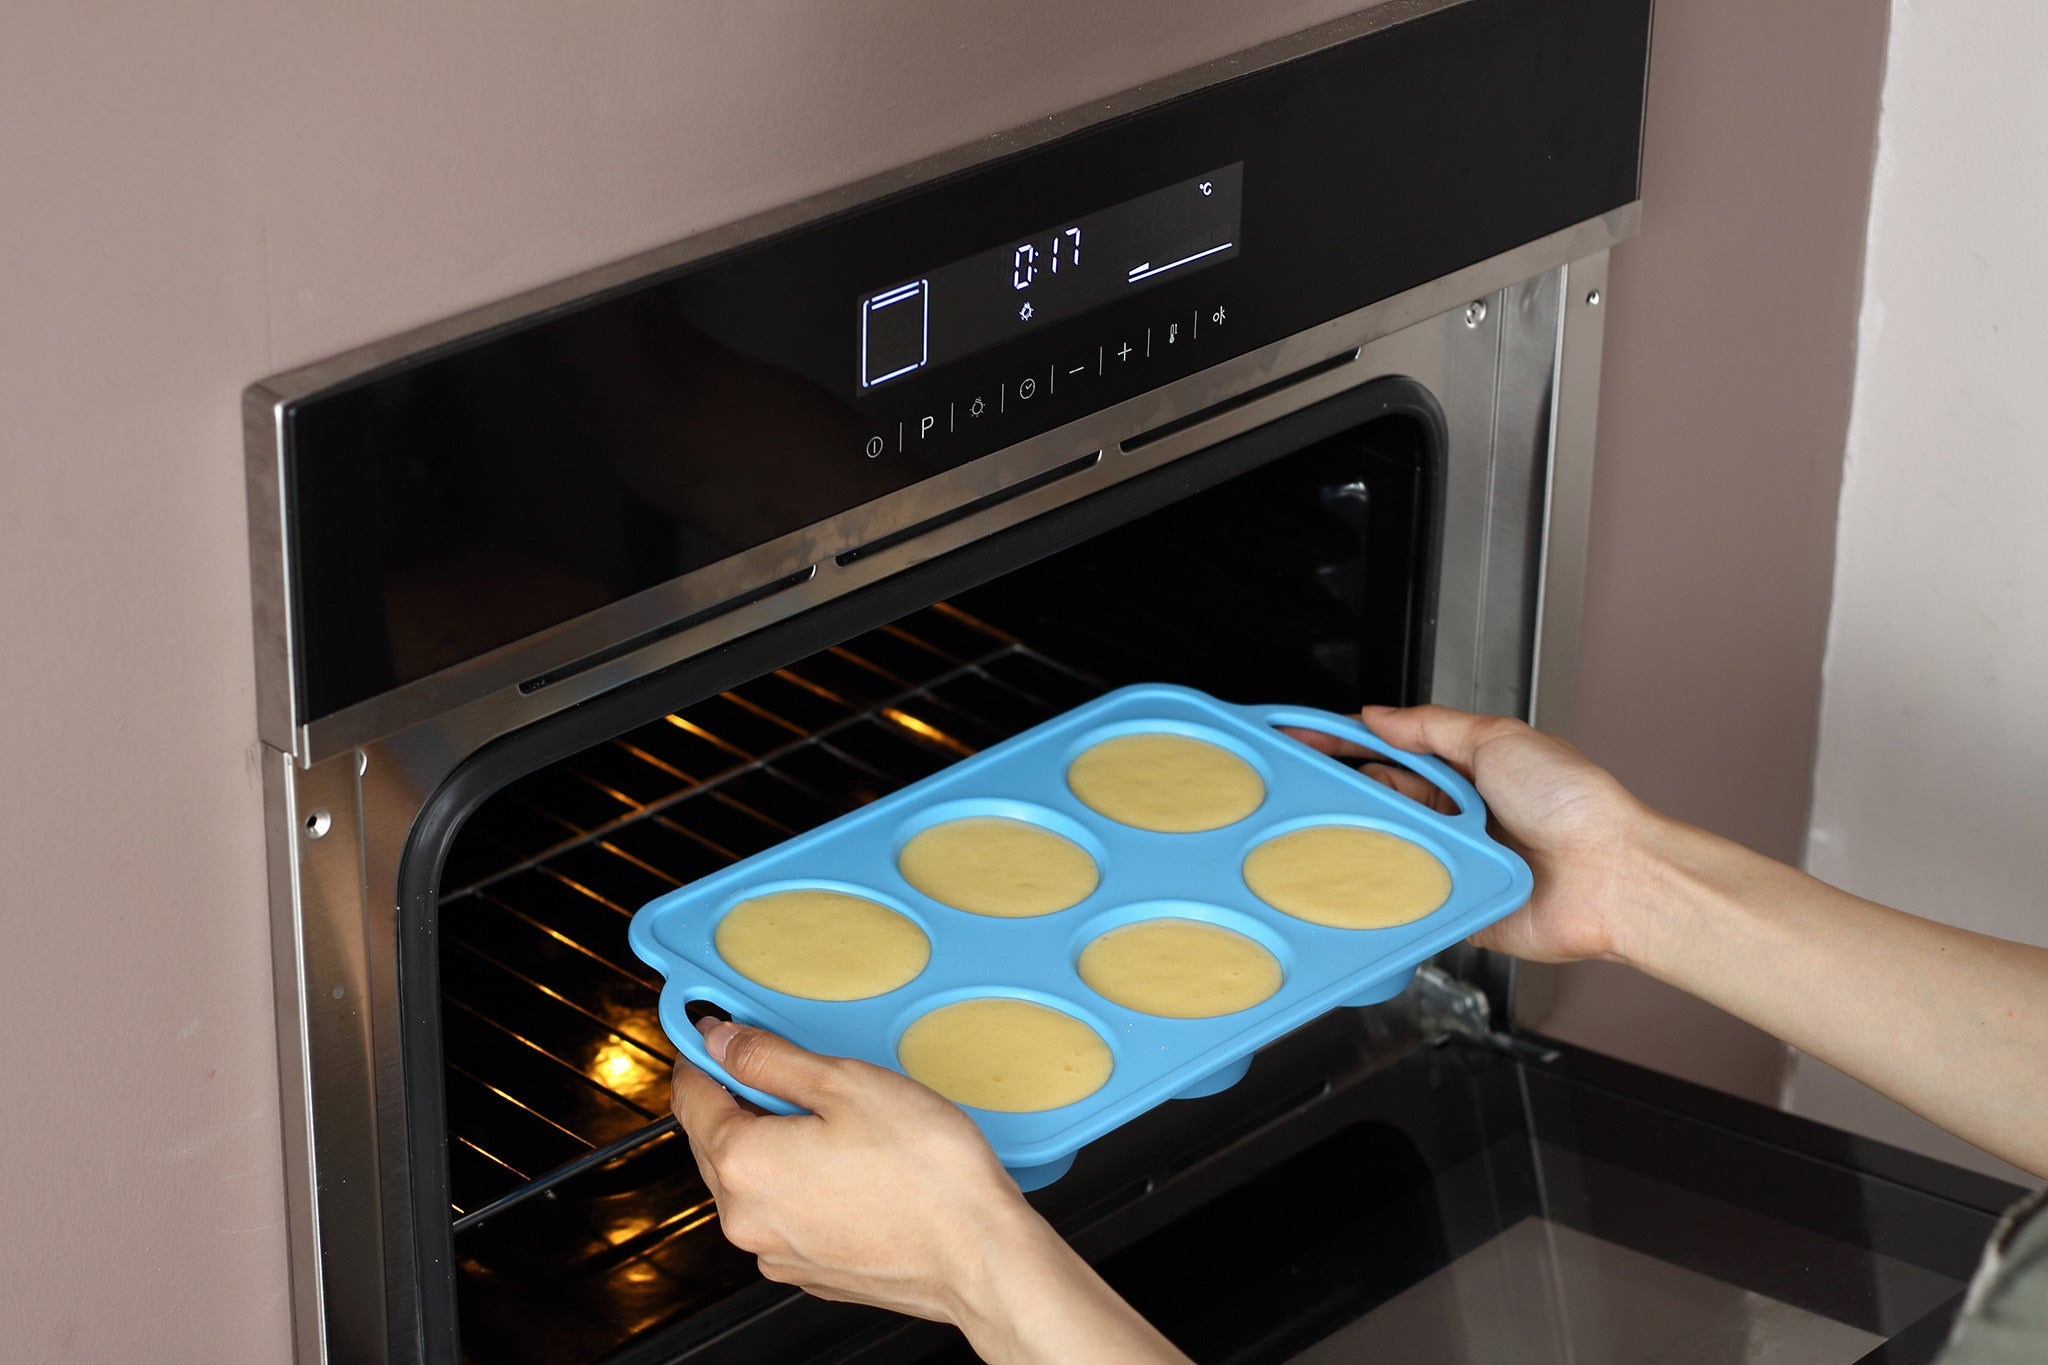 TRENDS home 6 Cup Silicone Cake, Sweet or Savory Muffin Pan